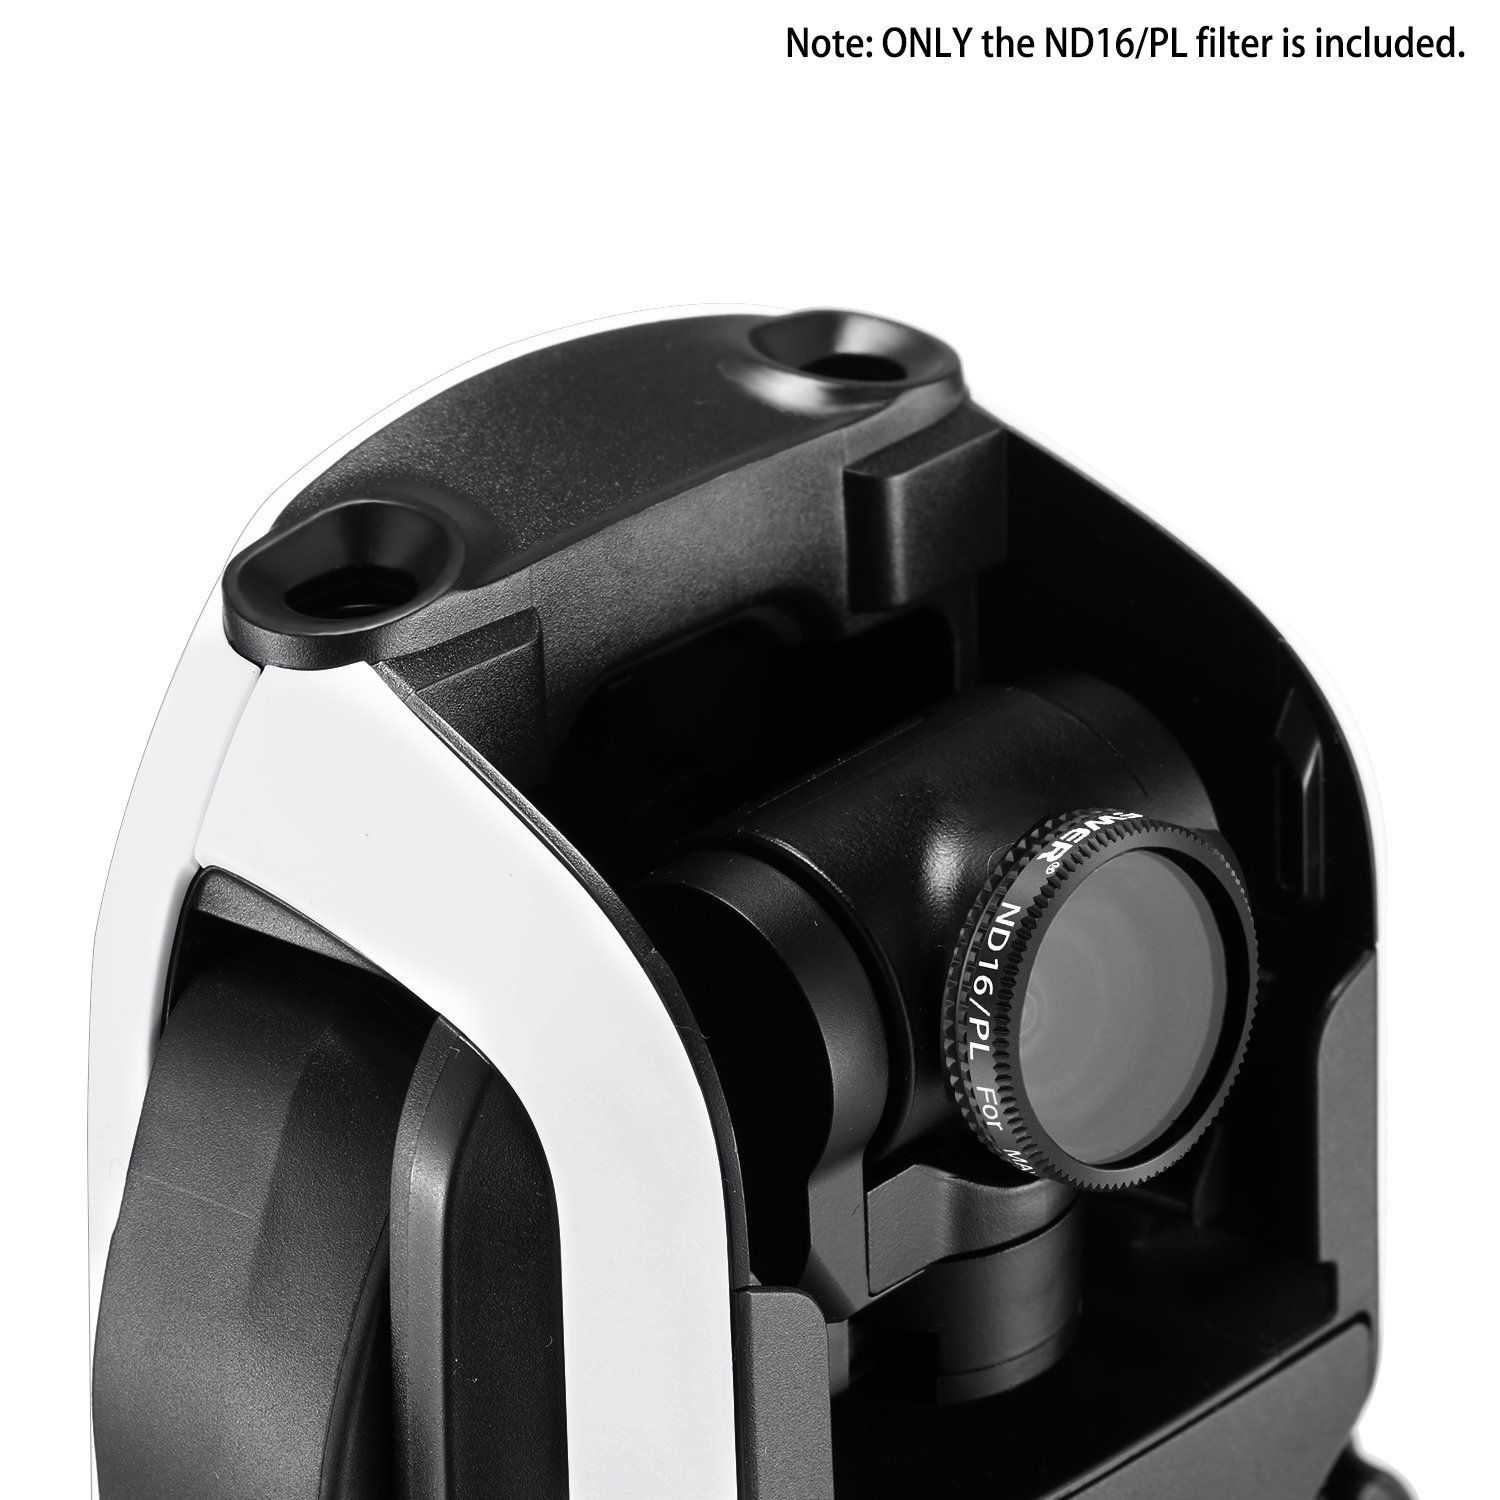 Neewer Pro ND 16 Filter for DJI Mavic Air Drone Quadcopter Black Made of Multi Coated Optical Glass and Waterproof Aluminum Alloy Frame